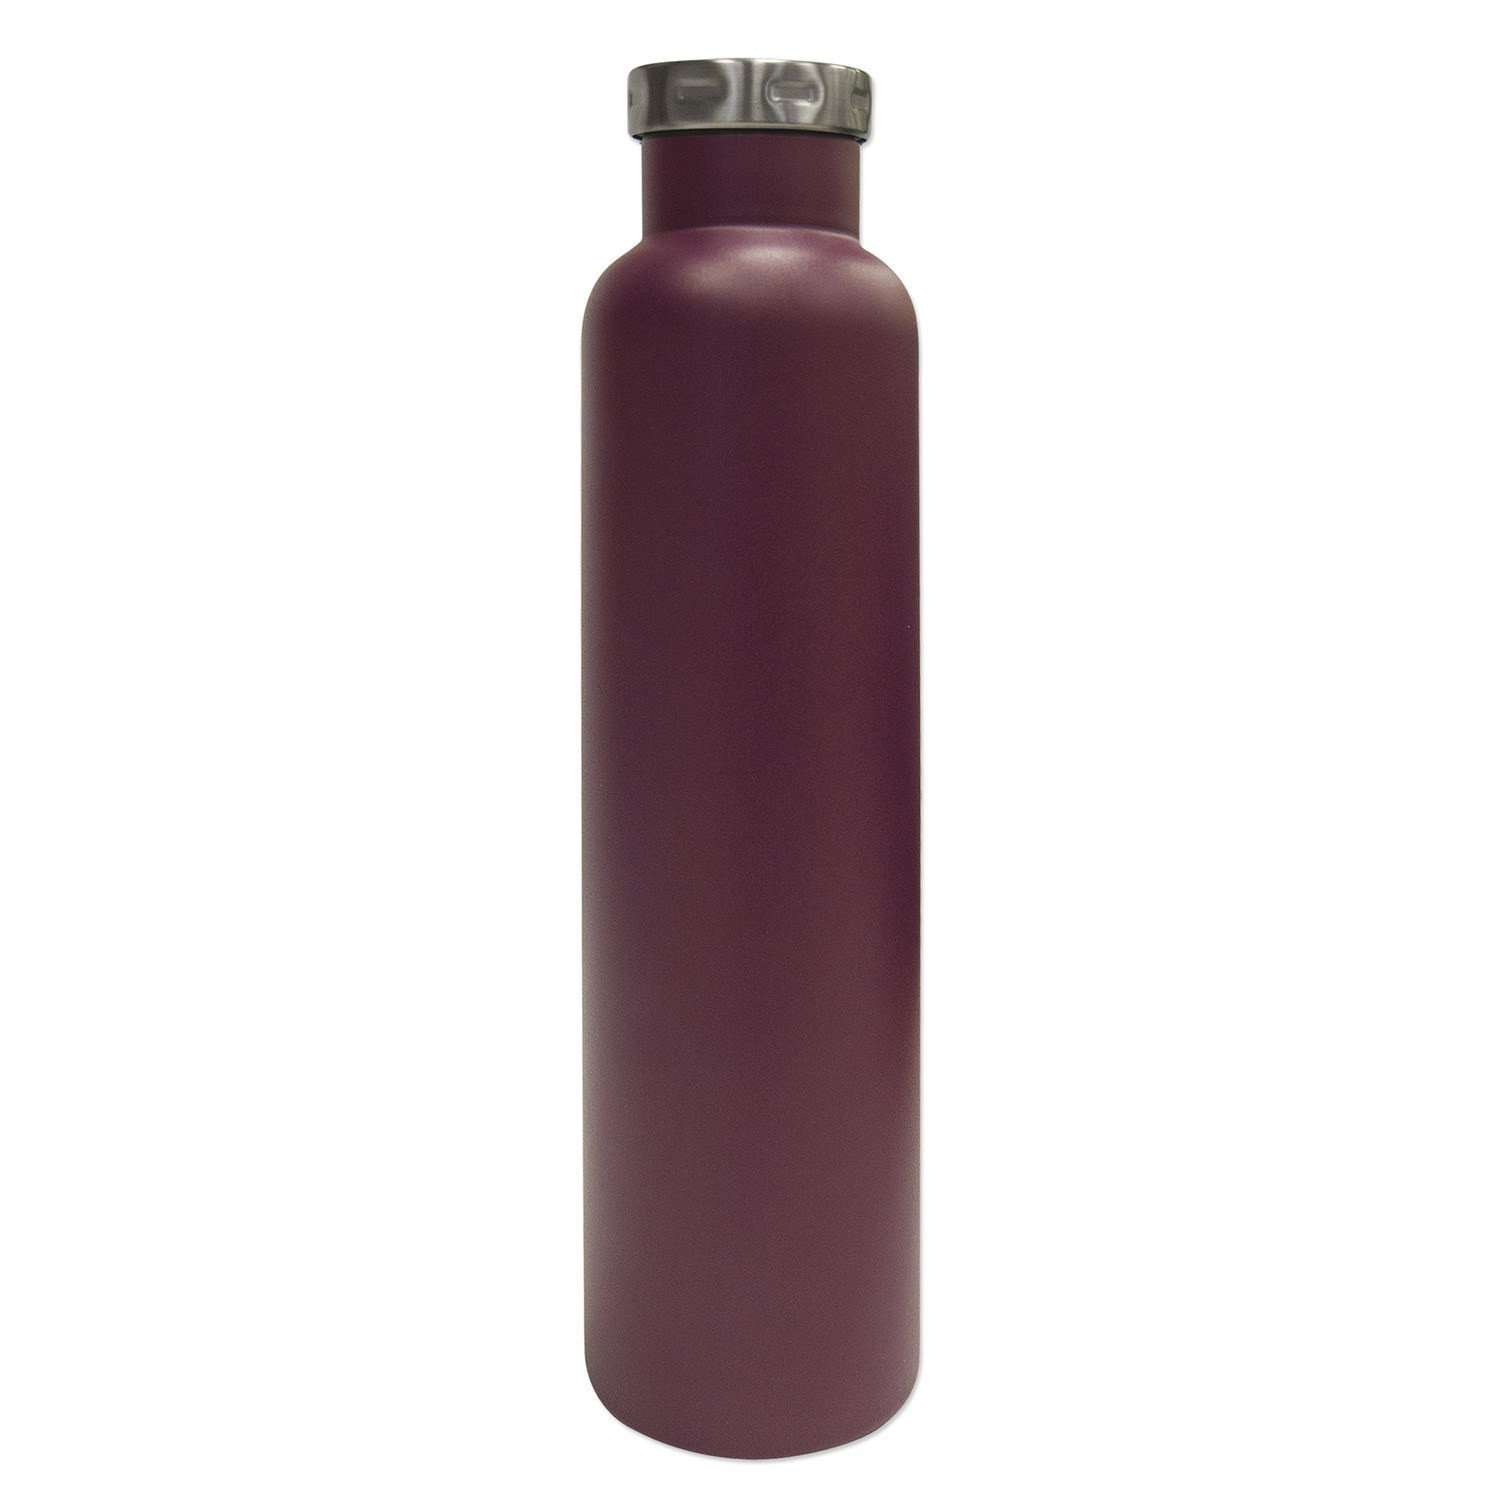 Fifty/Fifty Seven Fifty Double Wall Vacuum Insulated Wine Growler, 18/8 Stainless Steel, 750ml, Burgundy